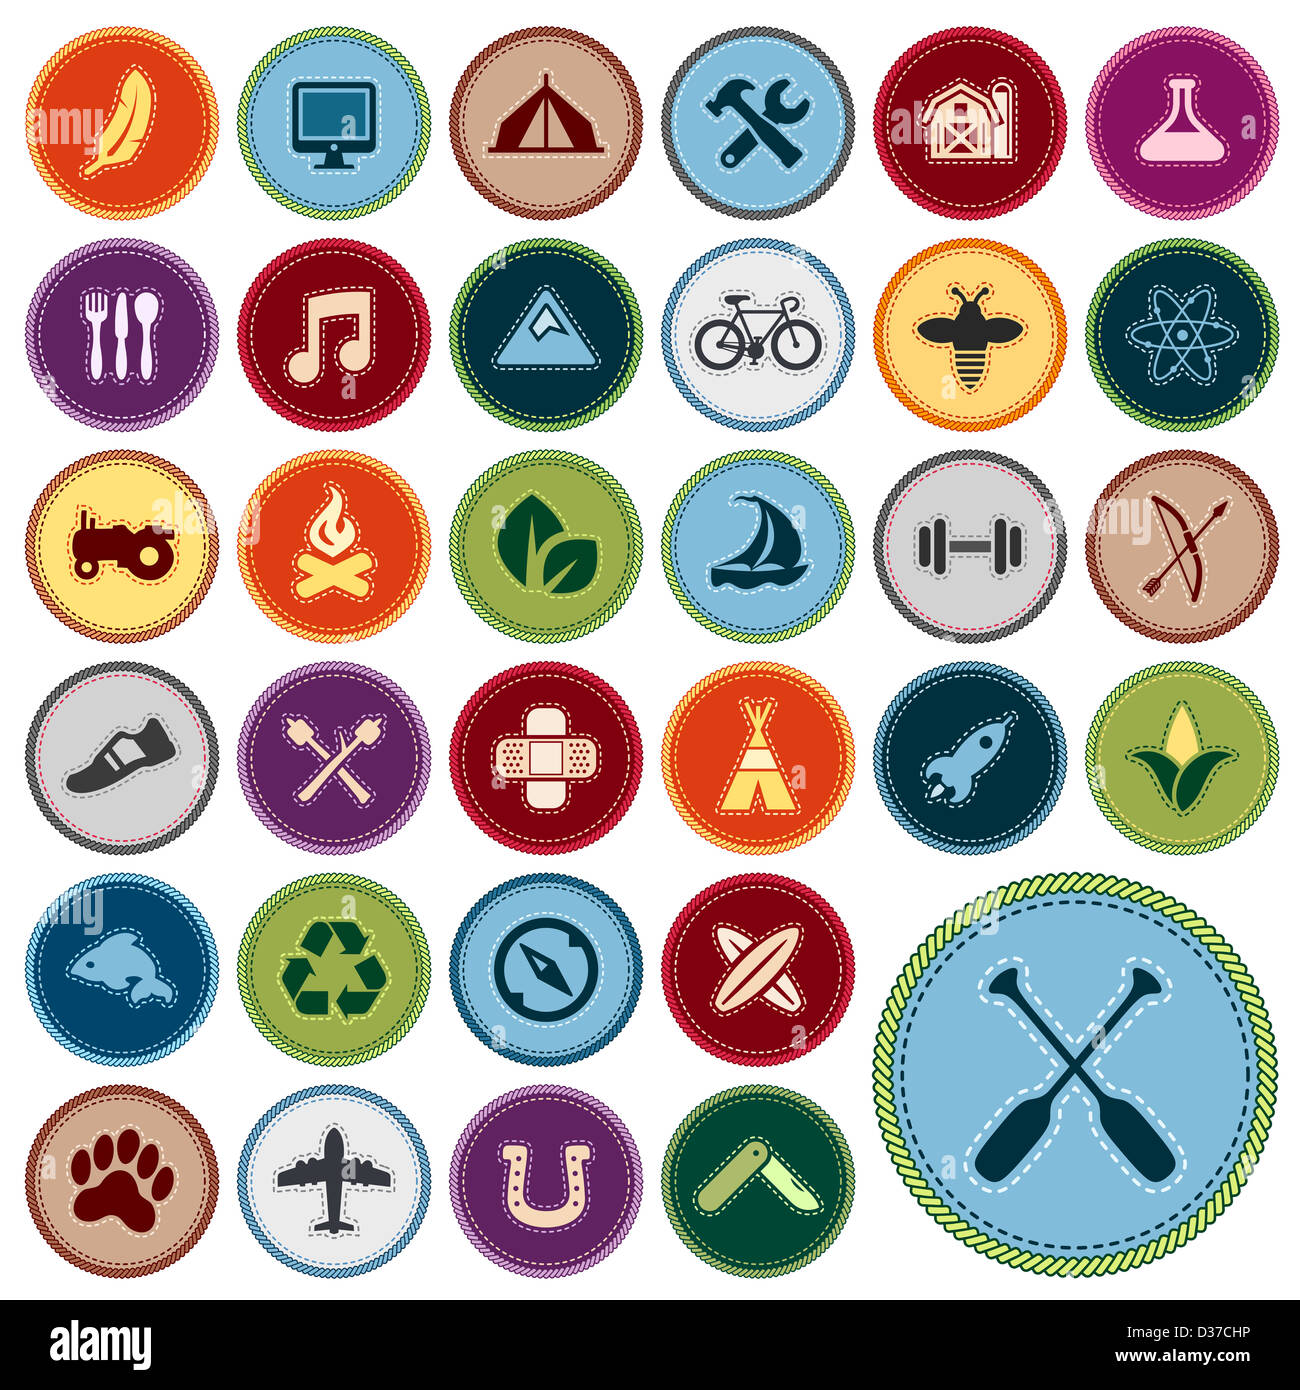 Set of scout merit badges for outdoor and academic activities - Stock Image